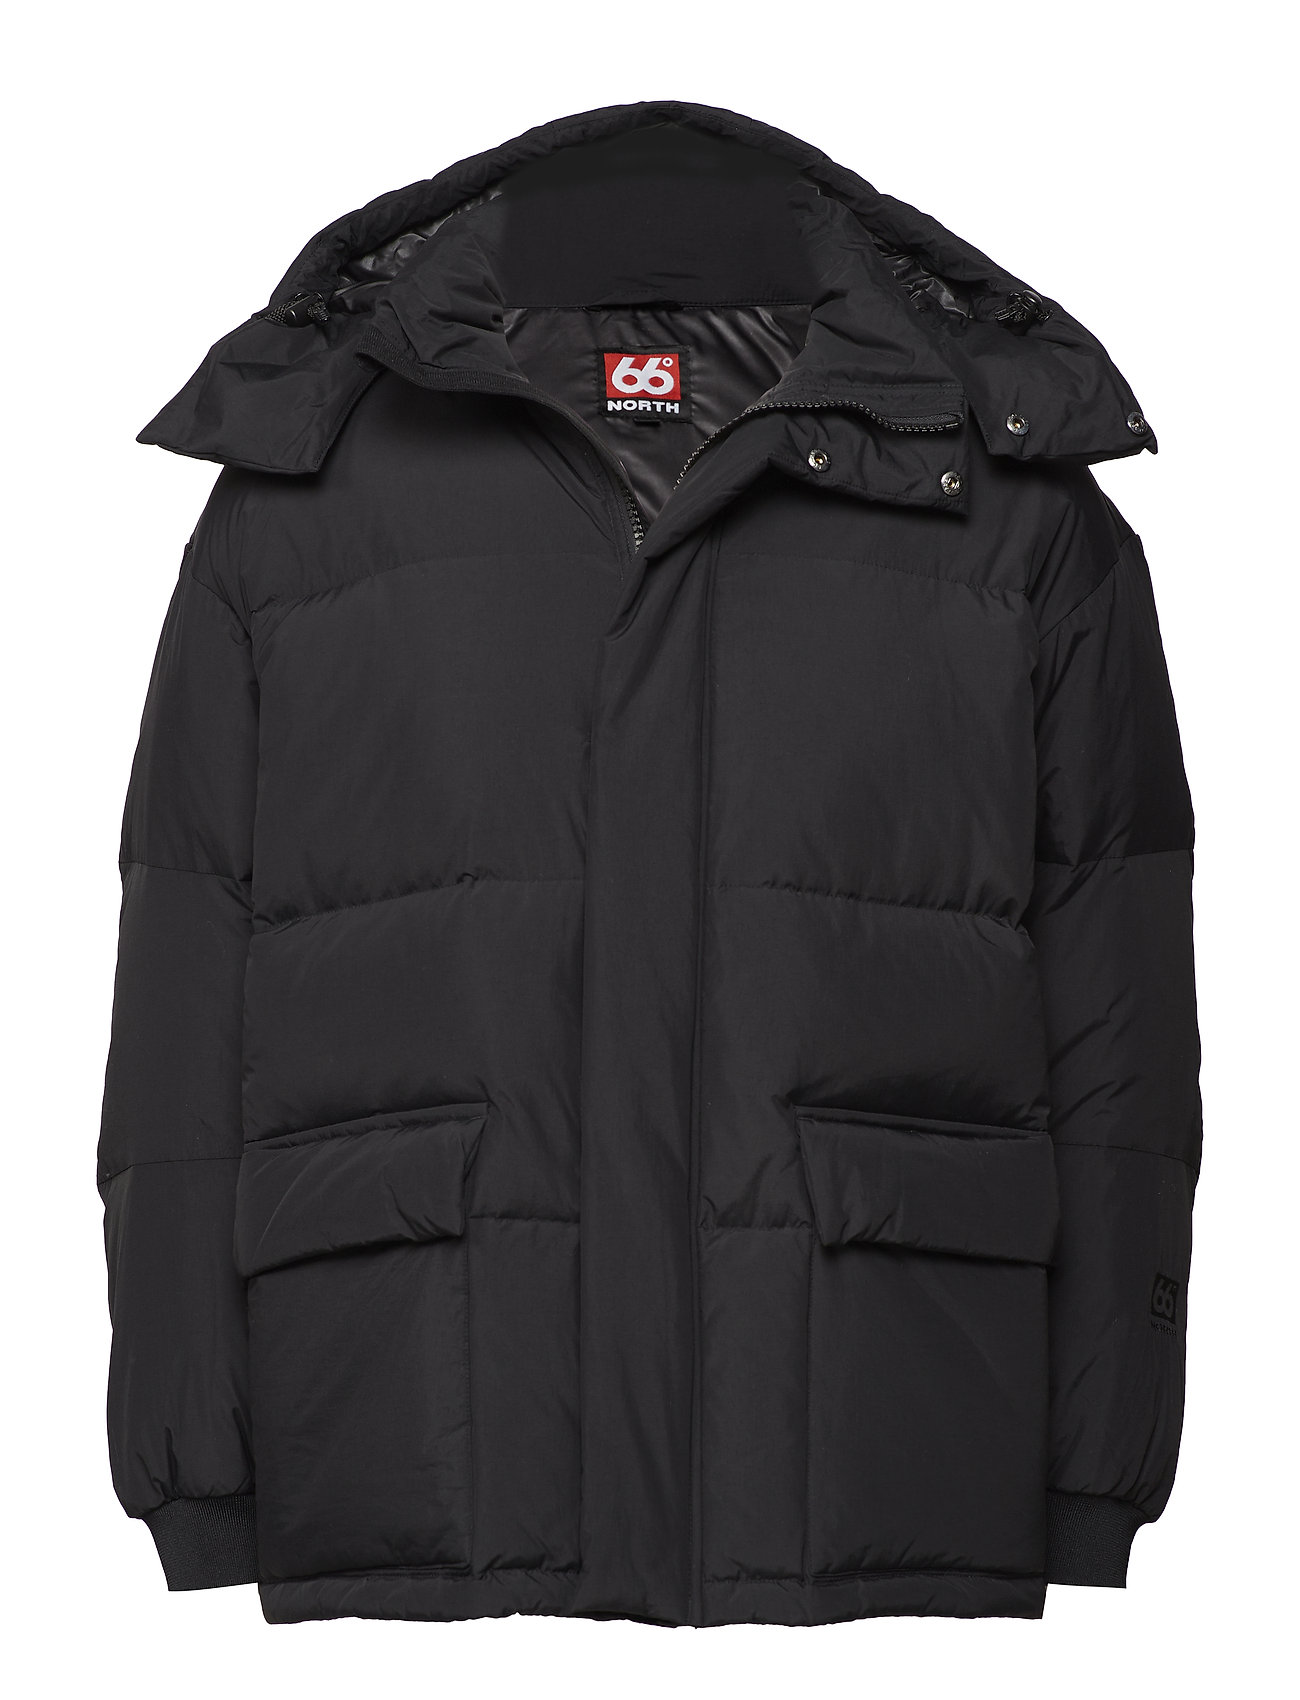 dace25ec5 Askja Down Jacket